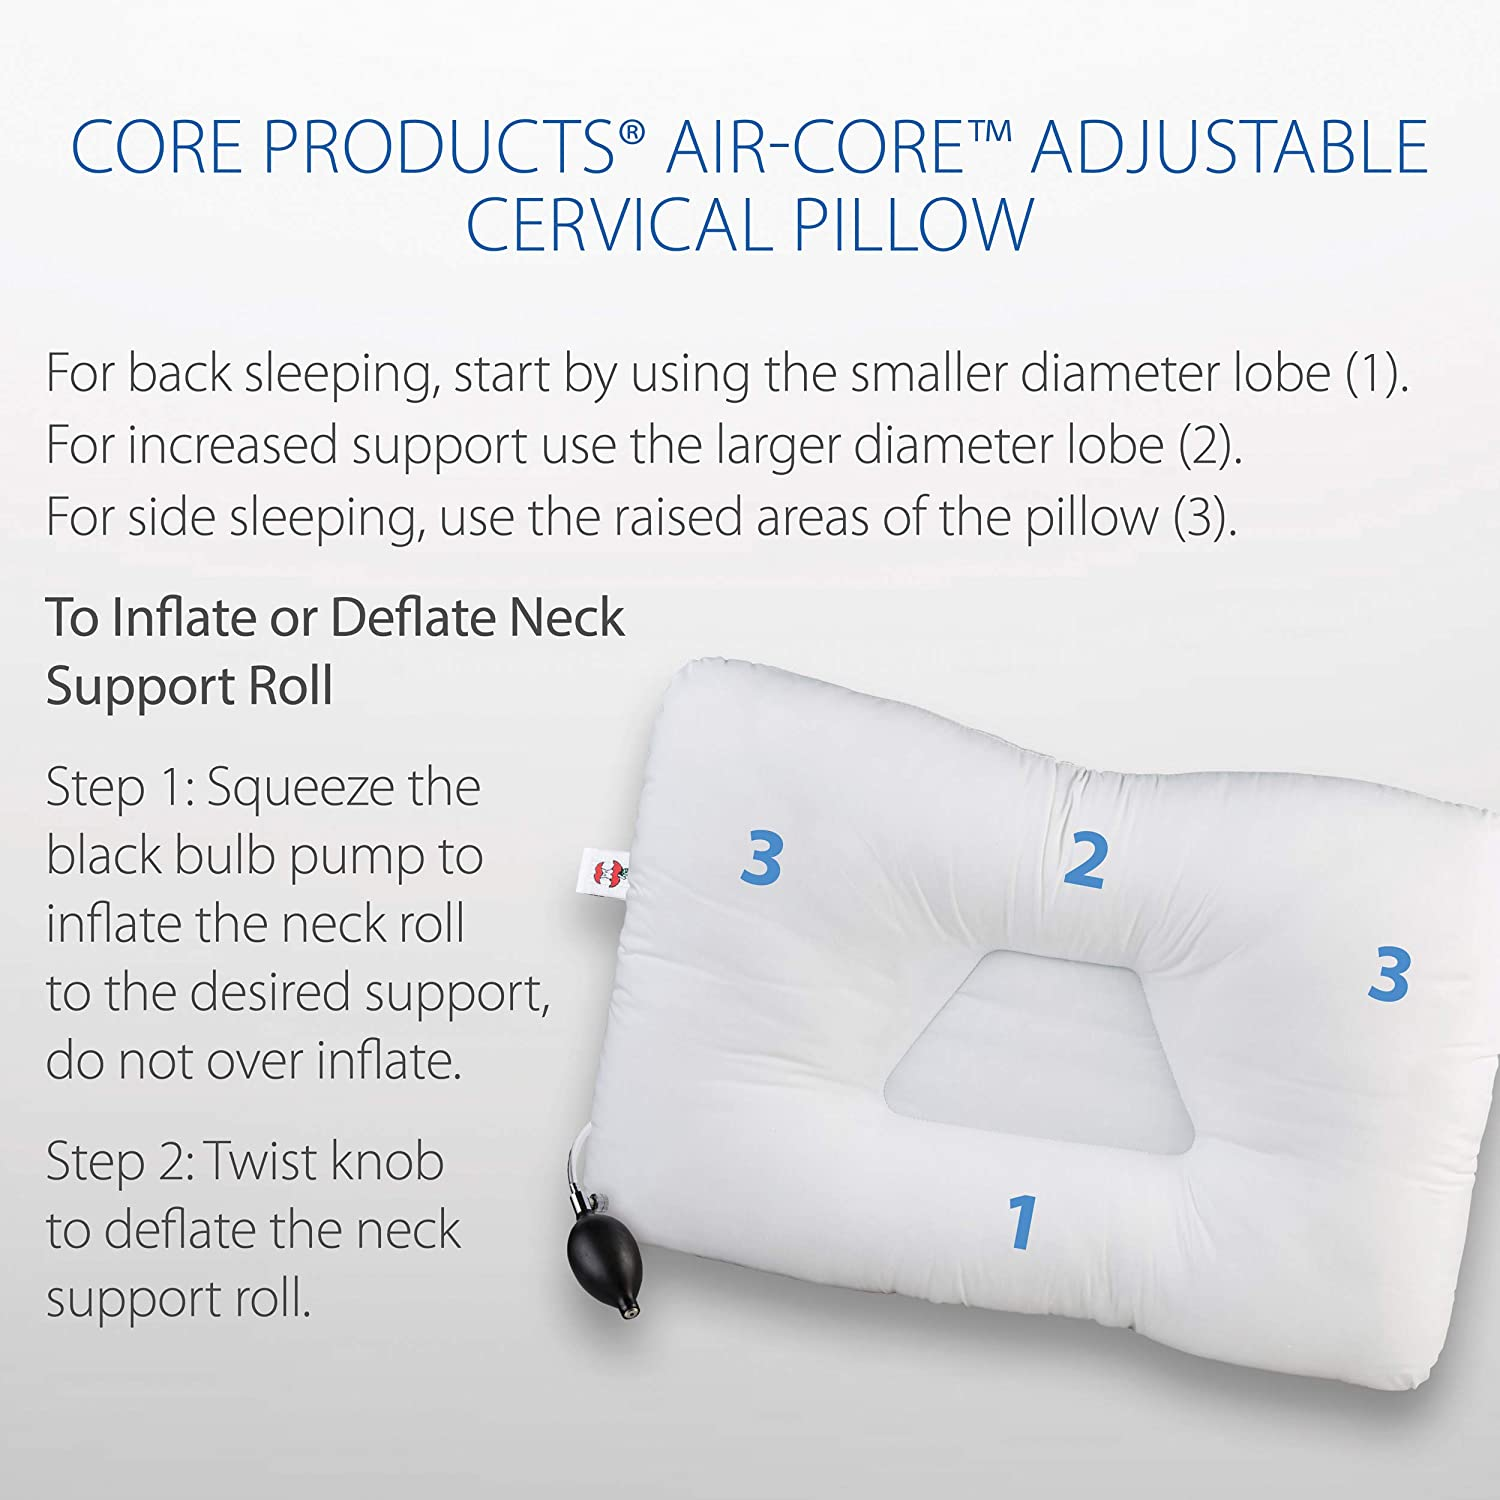 Core Products Air Core Adjustable Cervical Support Pillow FIB-204